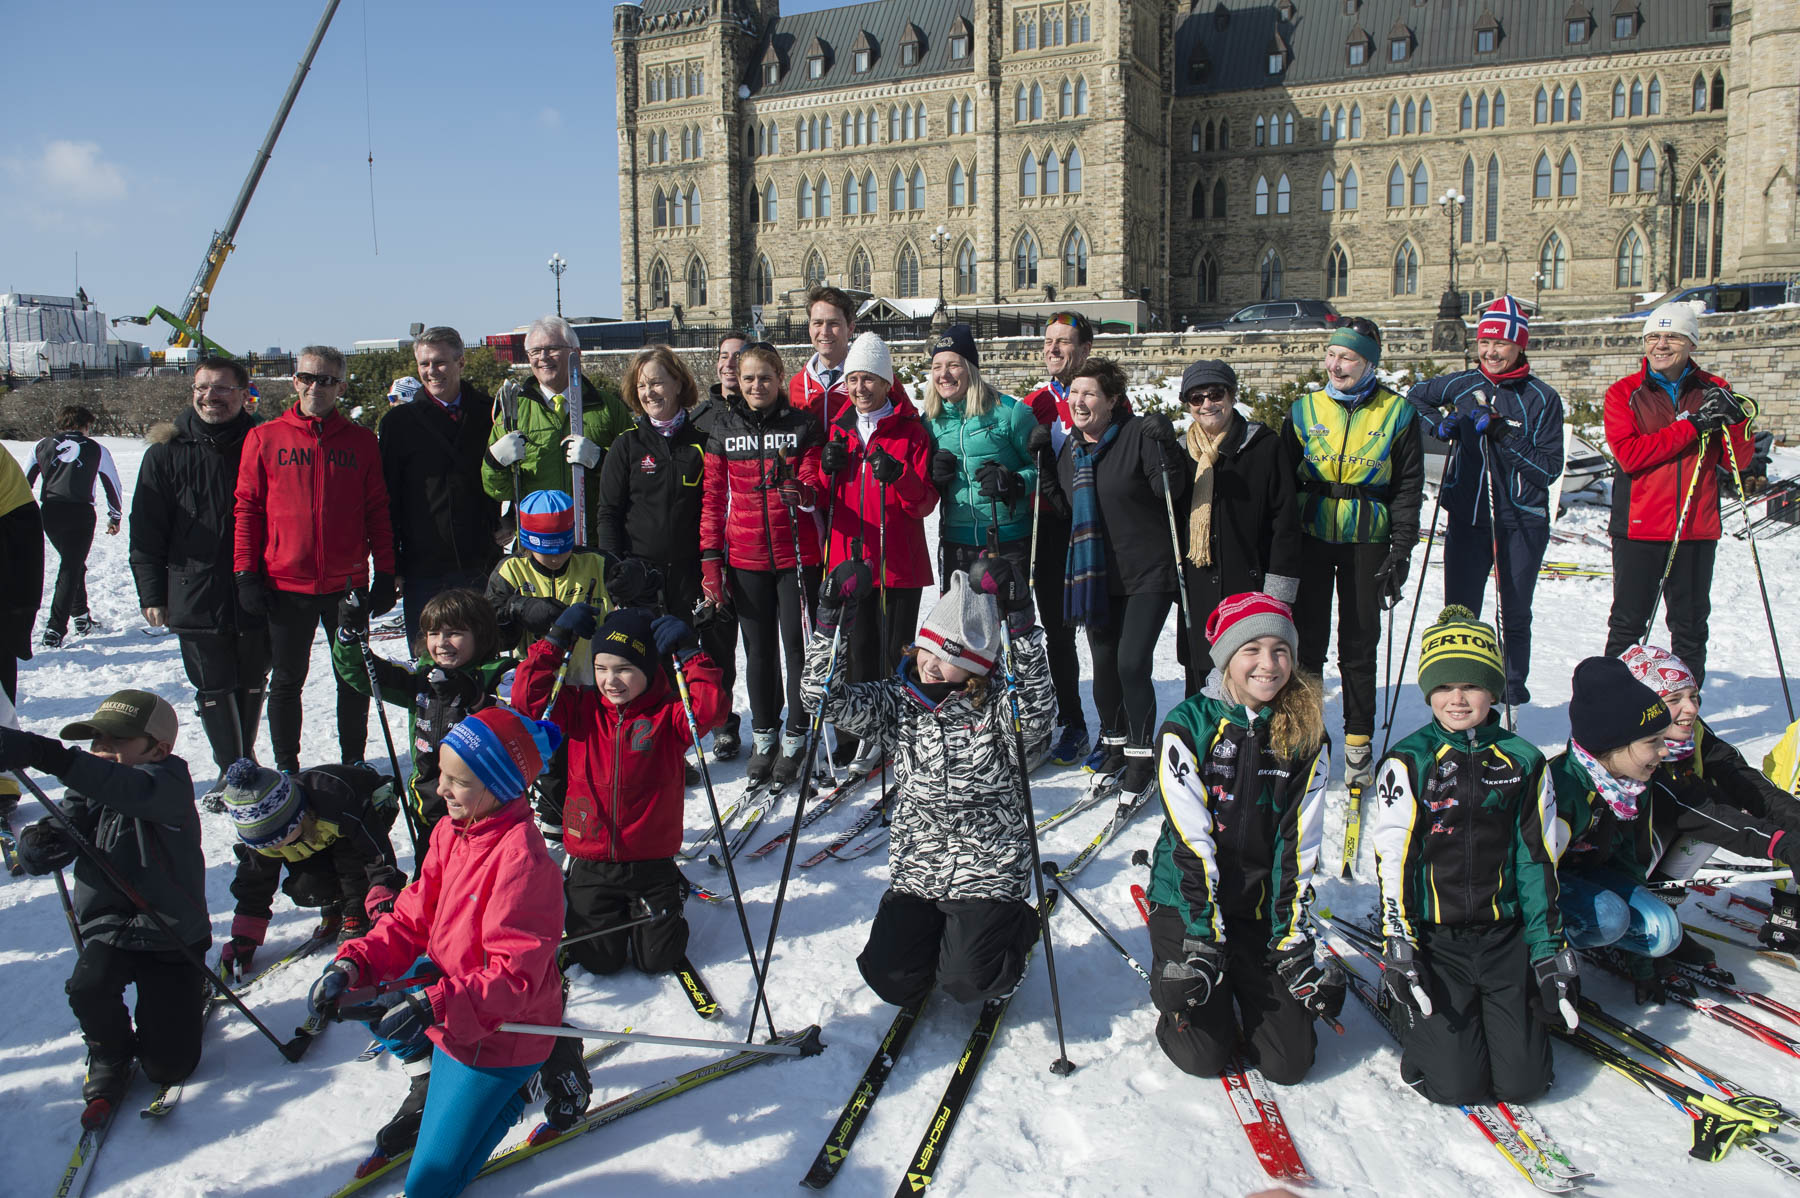 Her Excellency, senators, members of Parliament, Olympians and Paralympians, youth and volunteers gathered for a group photo before skiing around a circuit on the West Lawn.